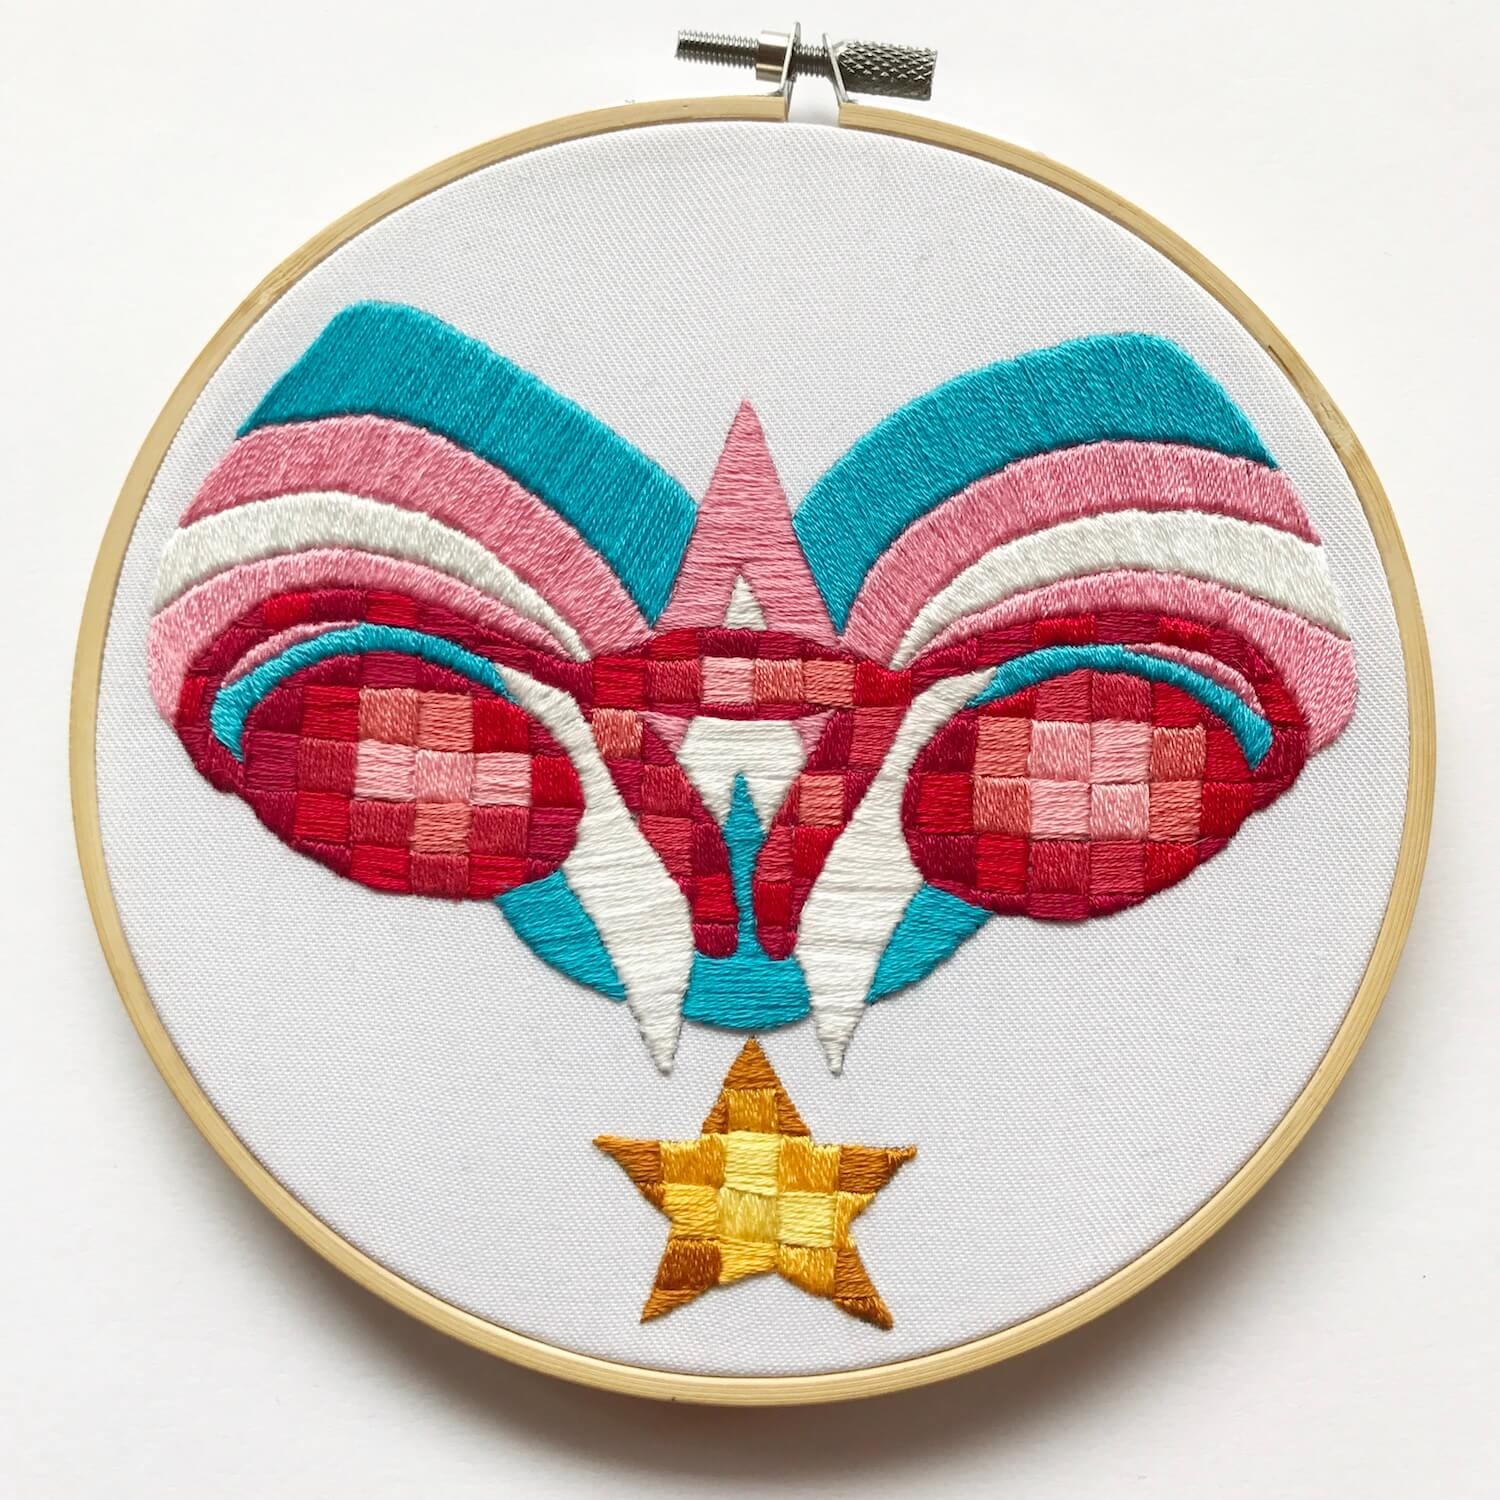 Ovaries embroidery with star motif